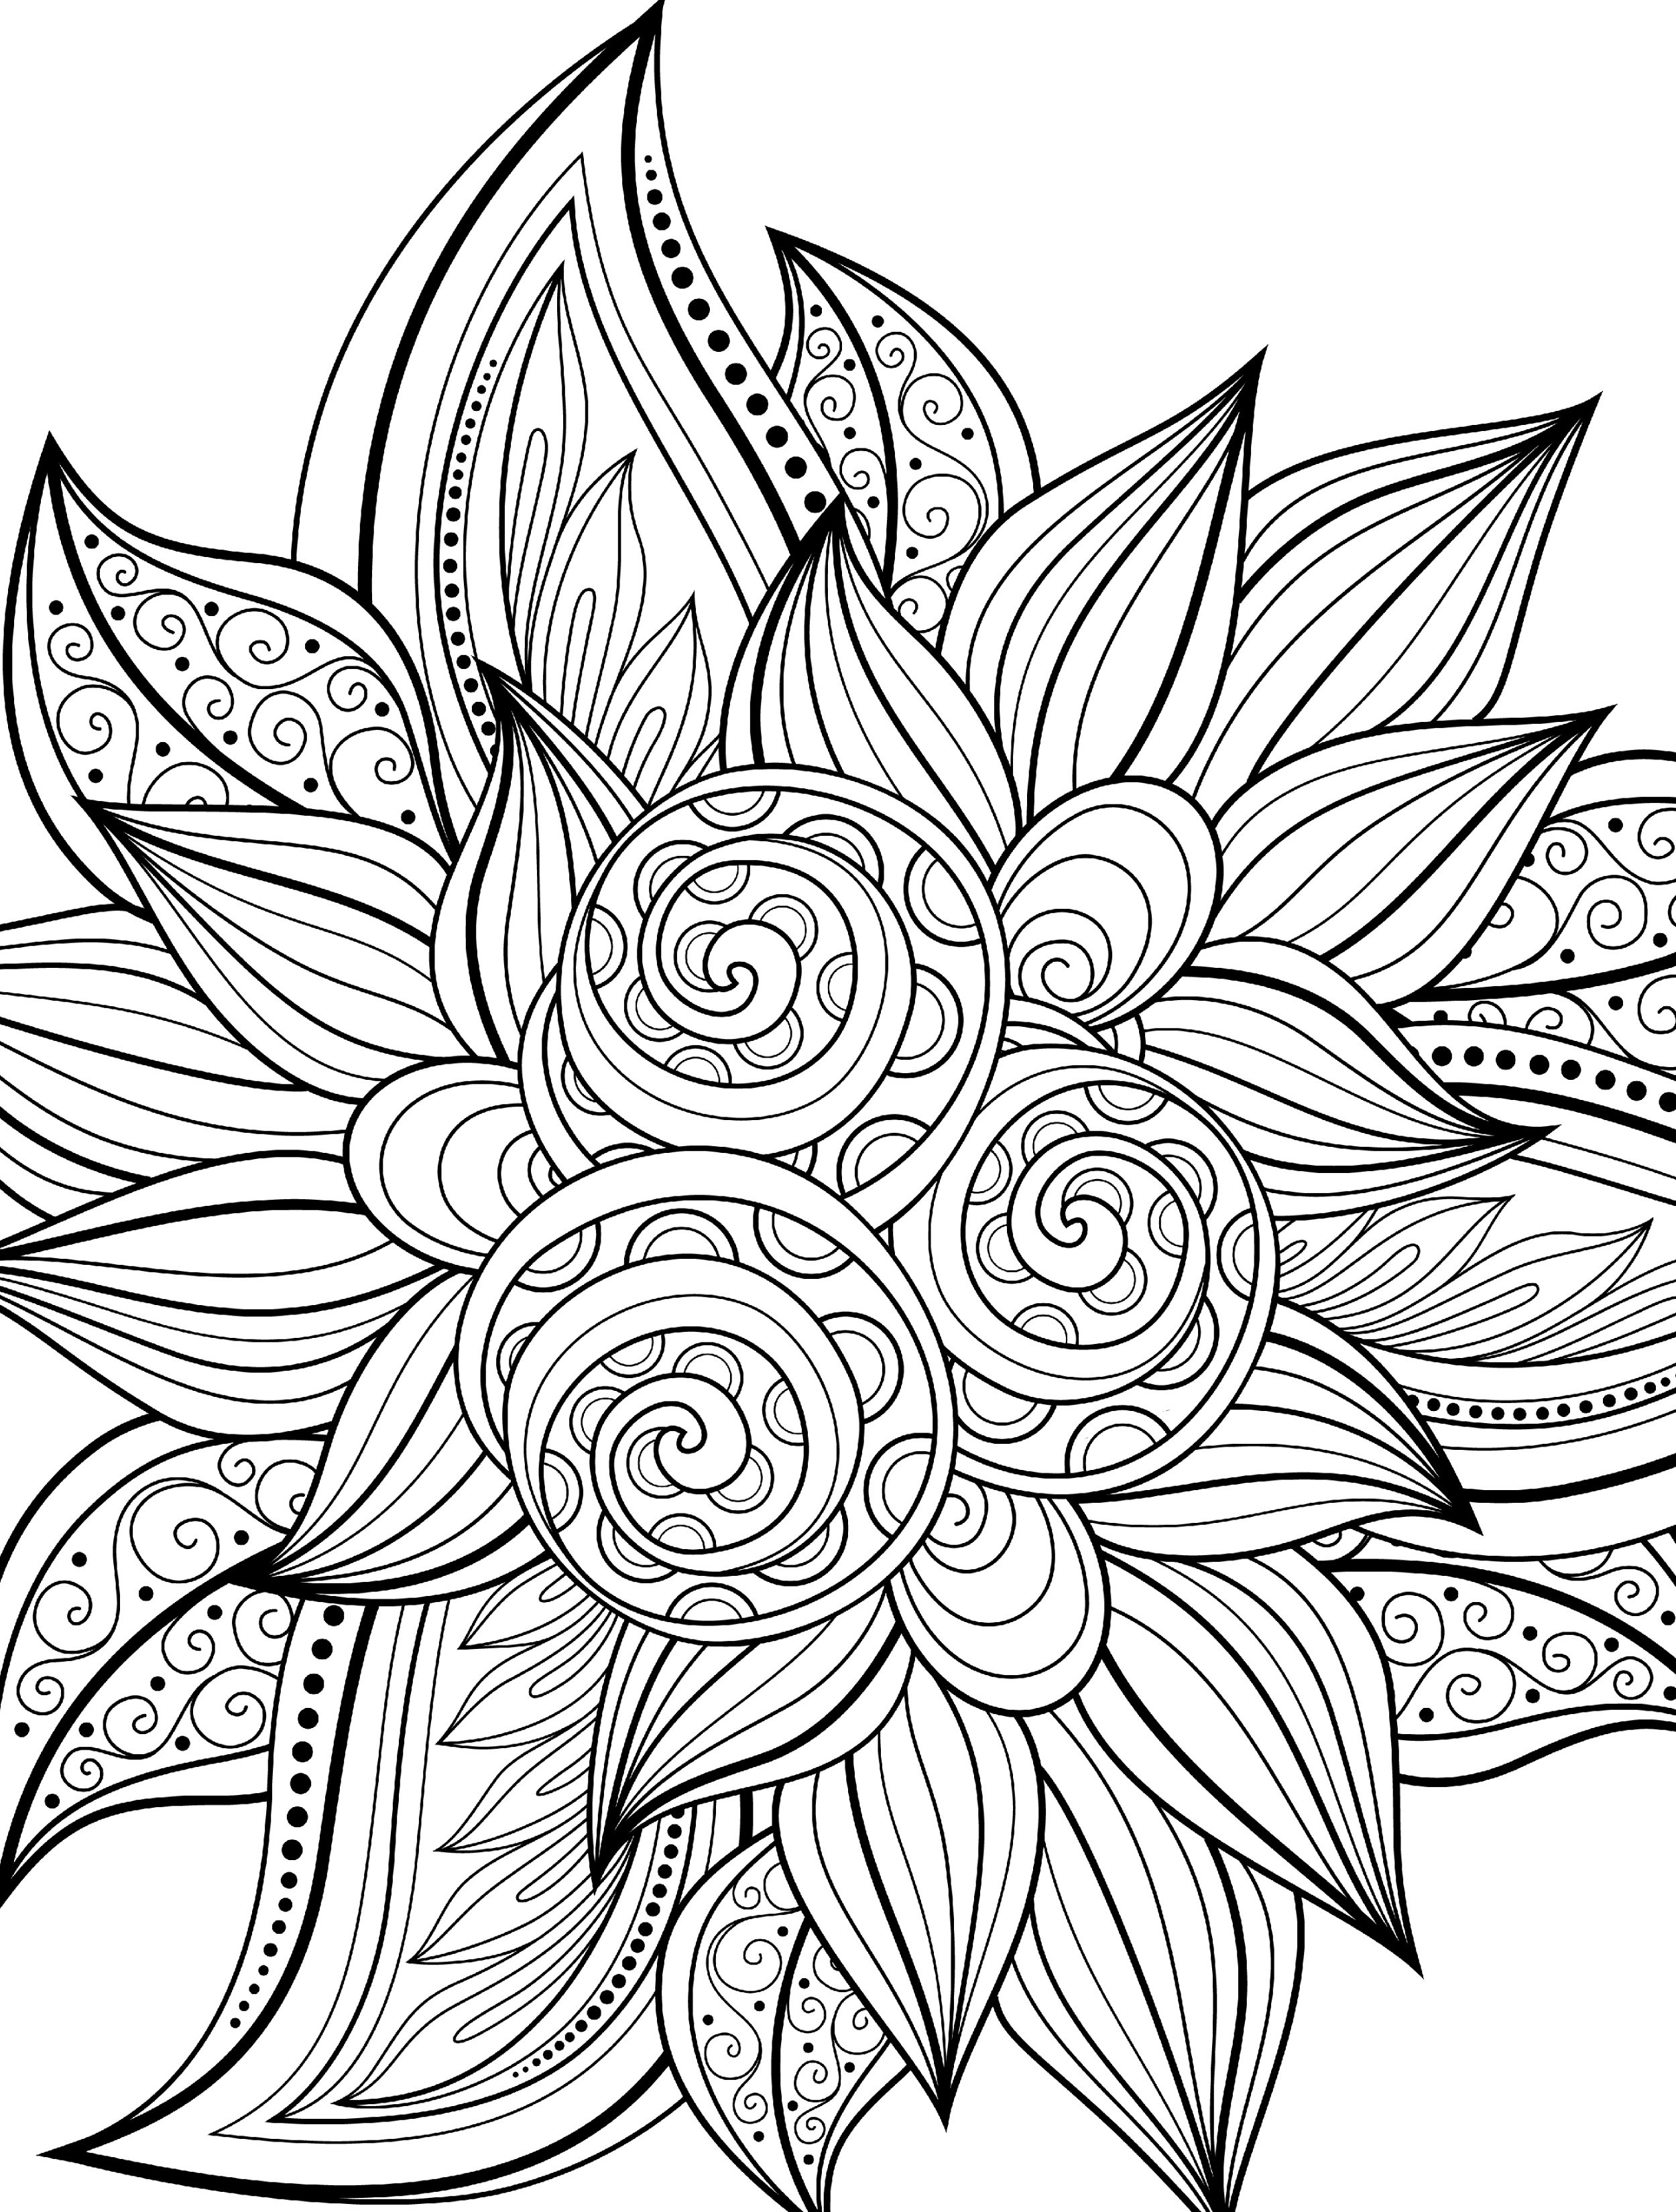 2500x3300 Well Suited Ideas Cool Coloring Pages For Adults To Print Year